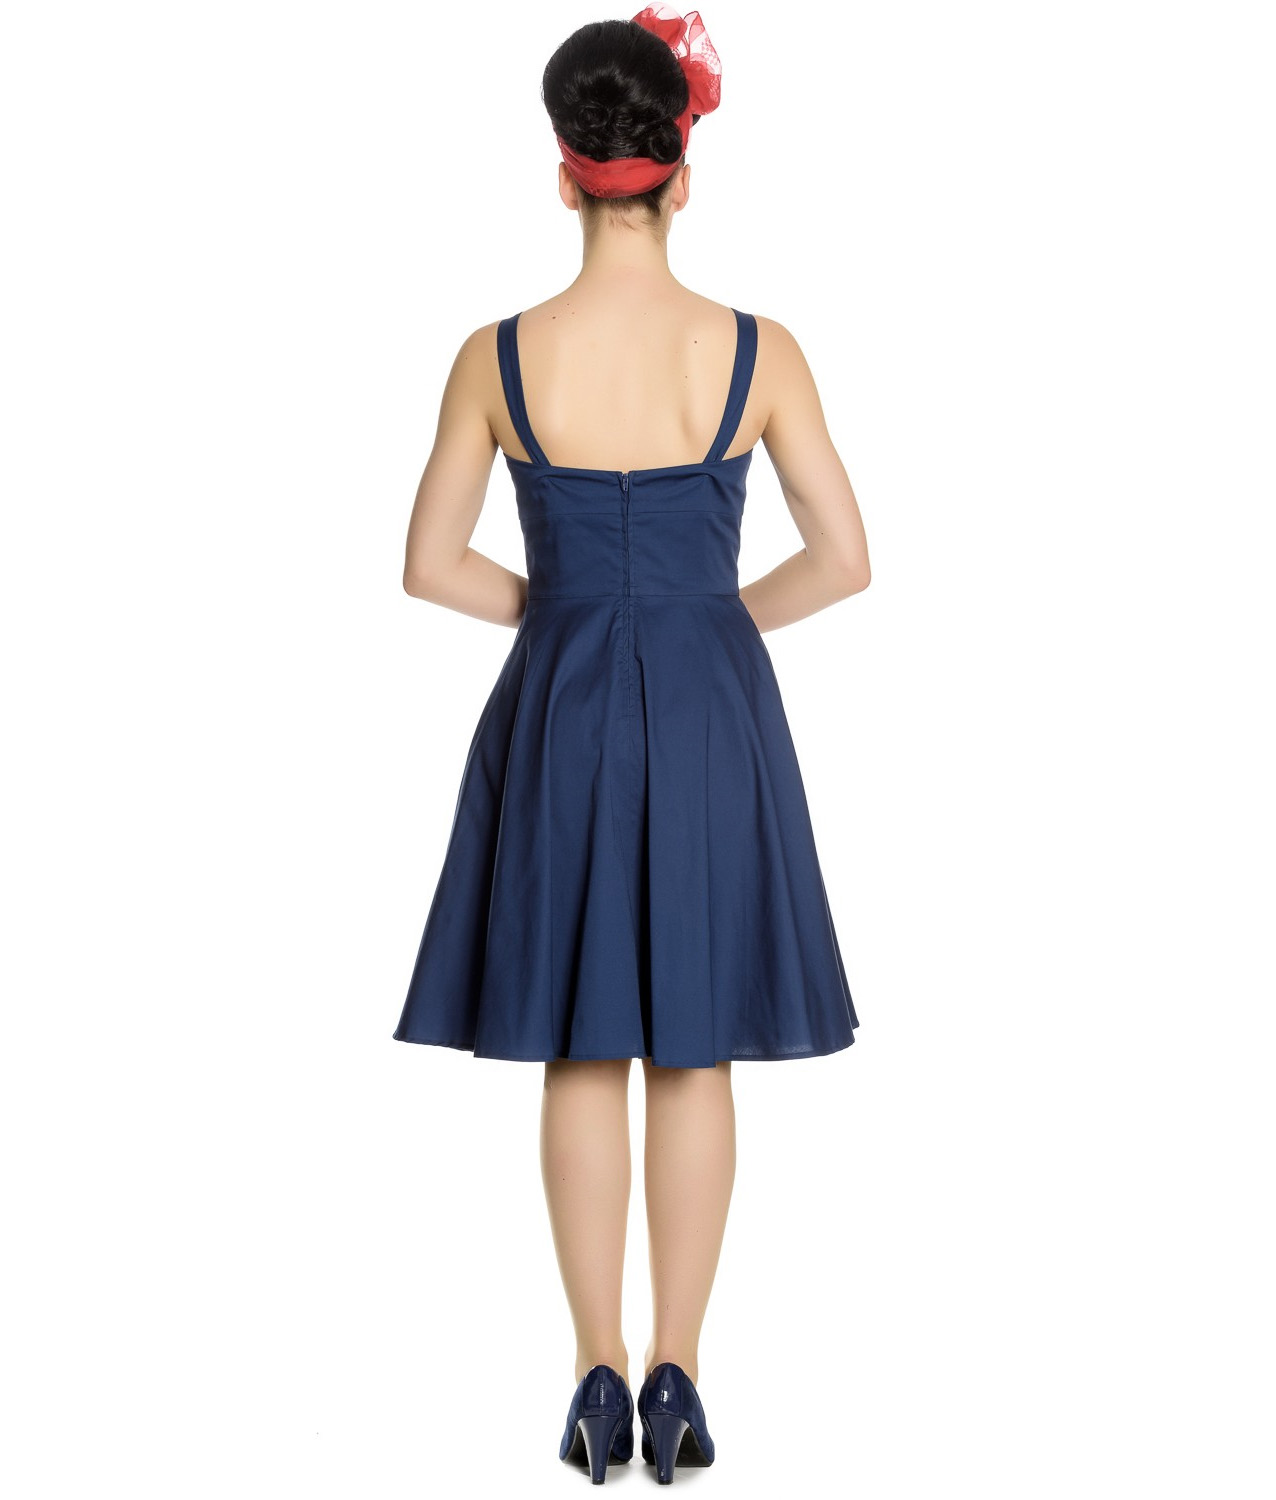 Hell-Bunny-Vintage-50s-Pin-Up-Dress-Navy-Blue-SELA-Nautical-Anchors-All-Sizes thumbnail 9